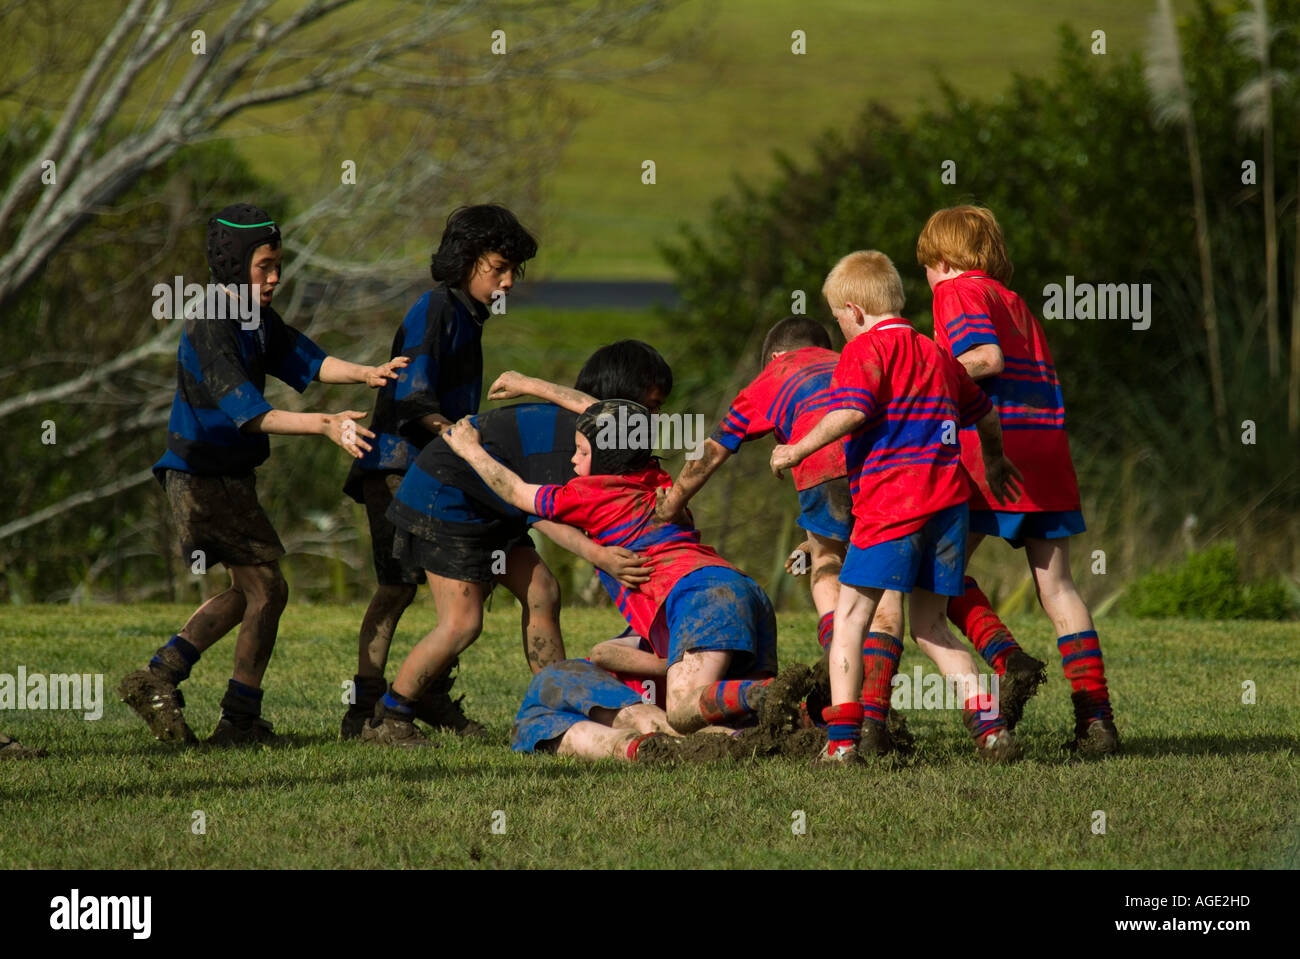 Maori Children Rugby New Zealand High Resolution Stock Photography And Images Alamy